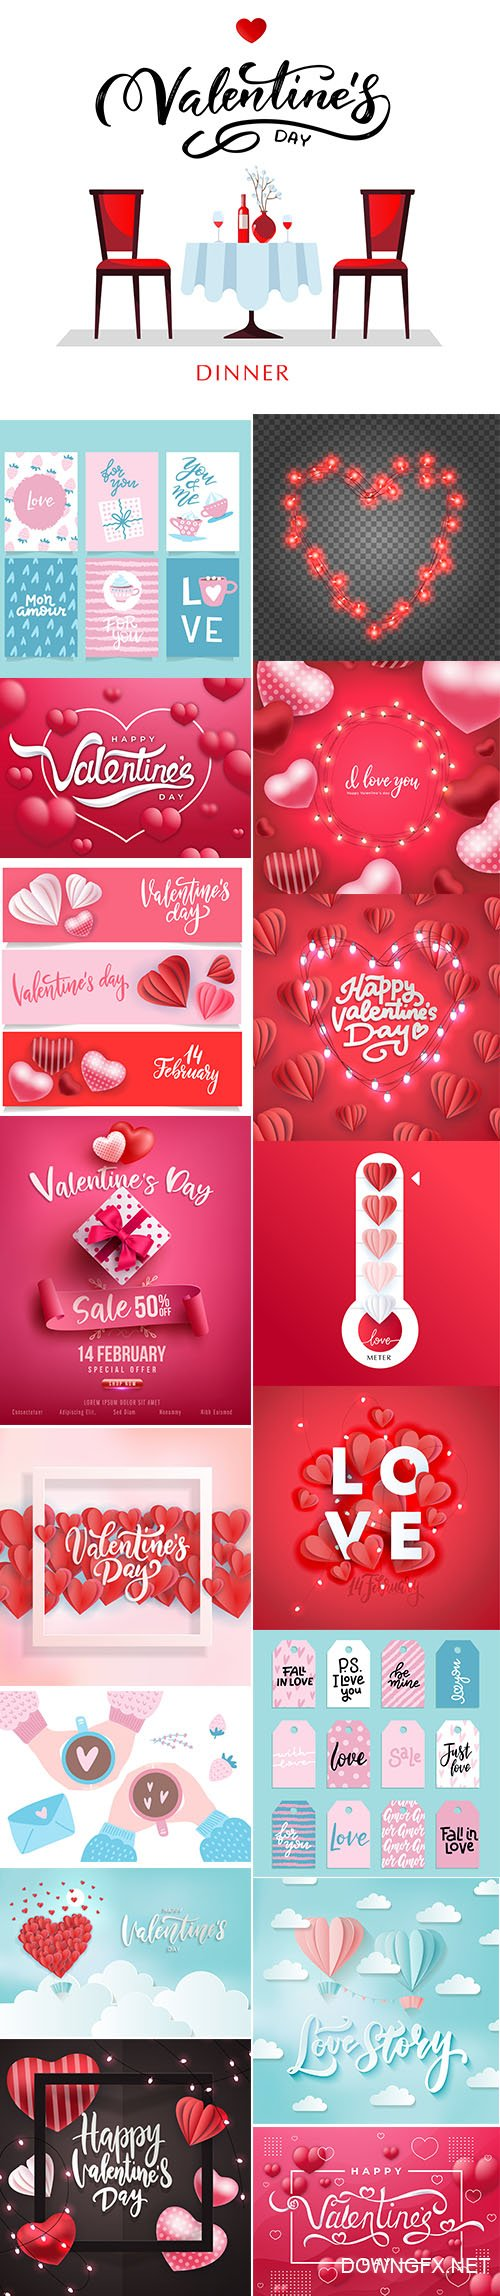 Set of Romantic Valentines Day Illustrations Vol 7